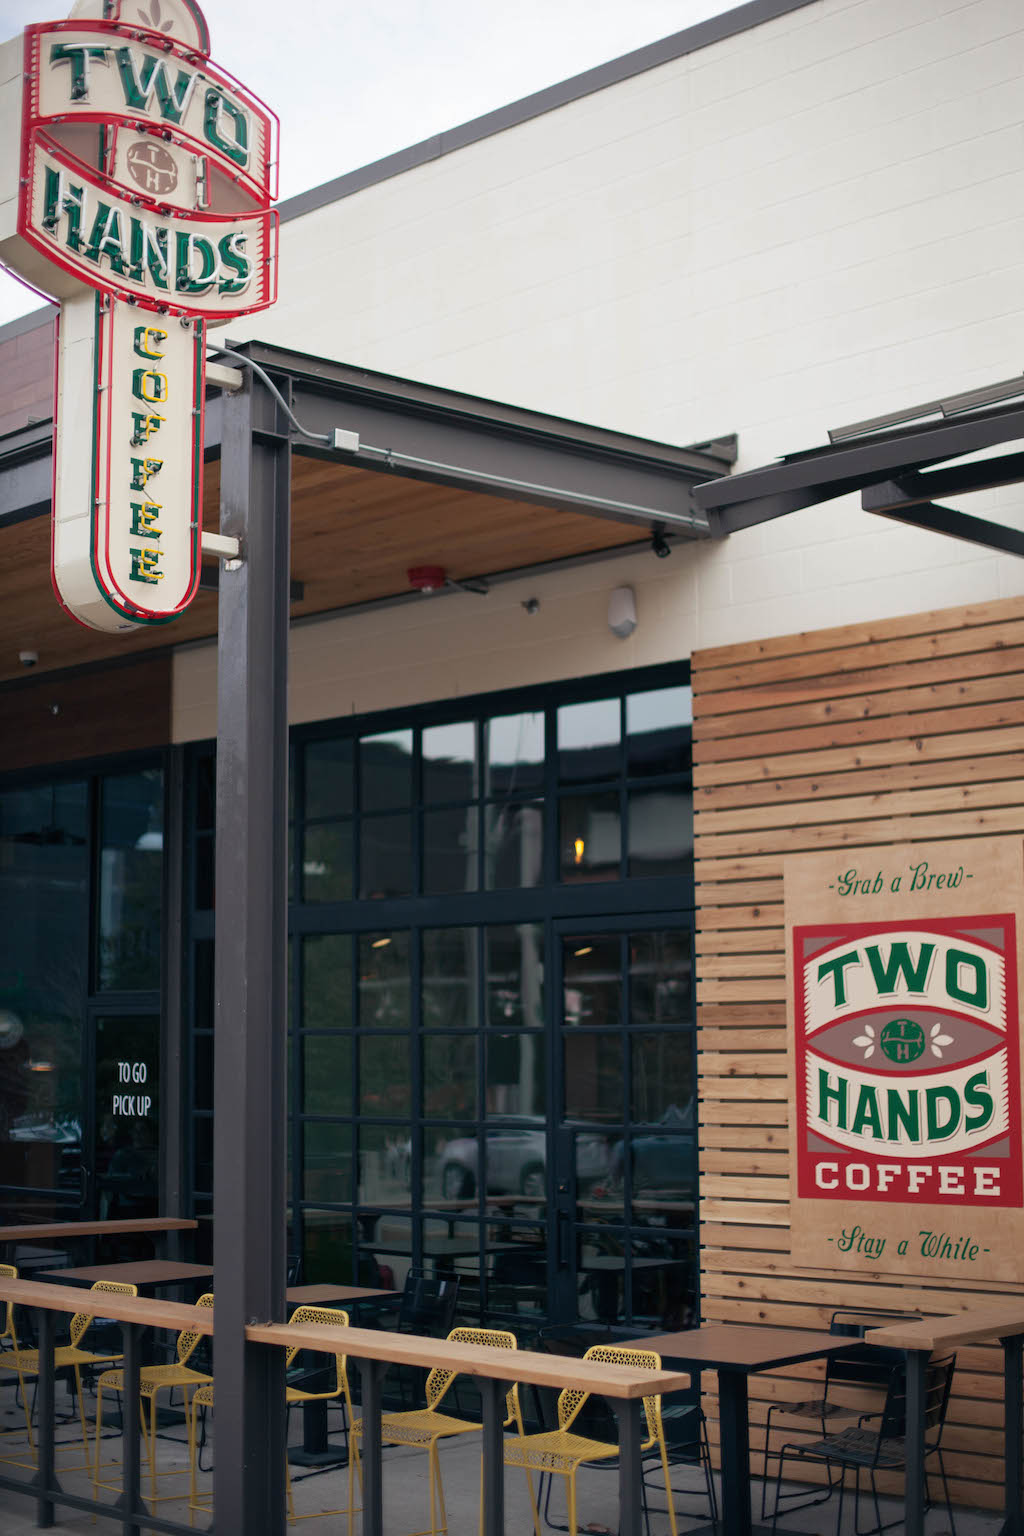 Two Hands Austin TX